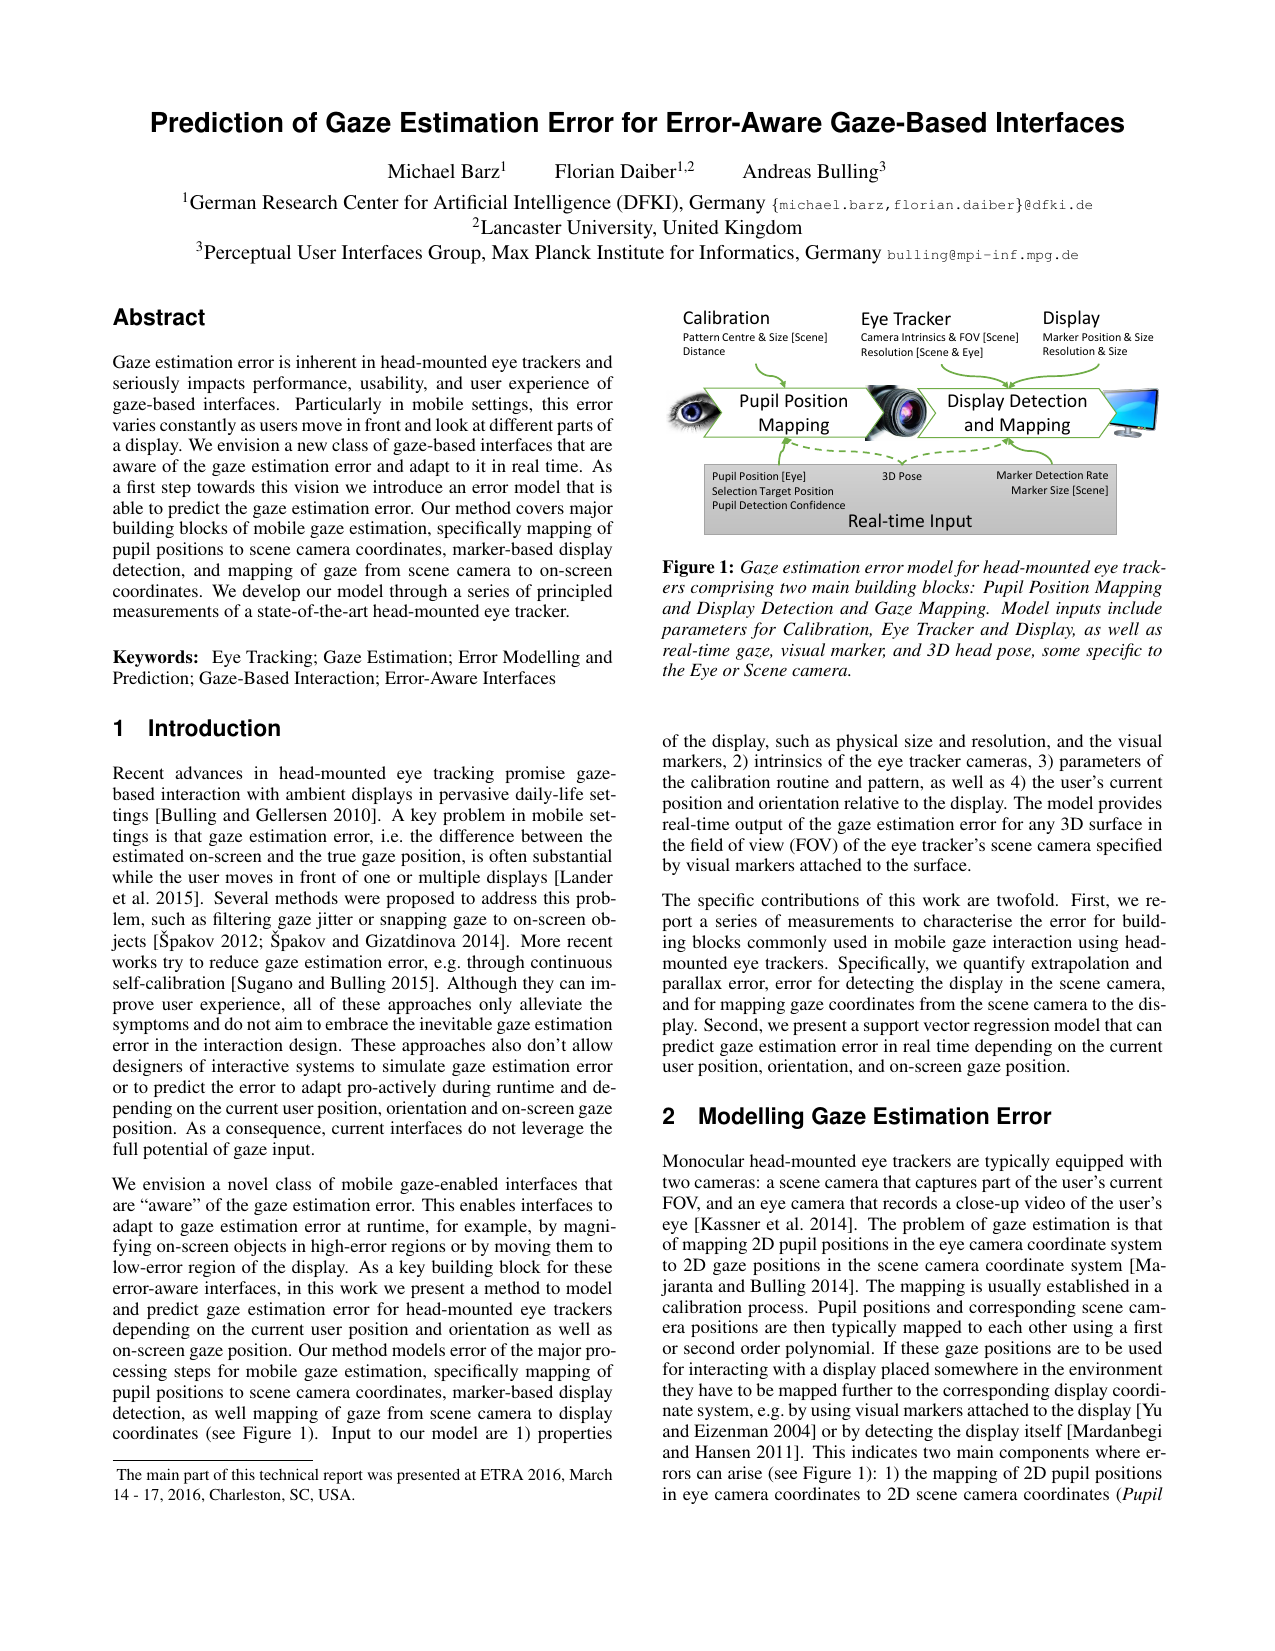 Computational Modelling and Prediction of Gaze Estimation Error for Head-mounted Eye Trackers